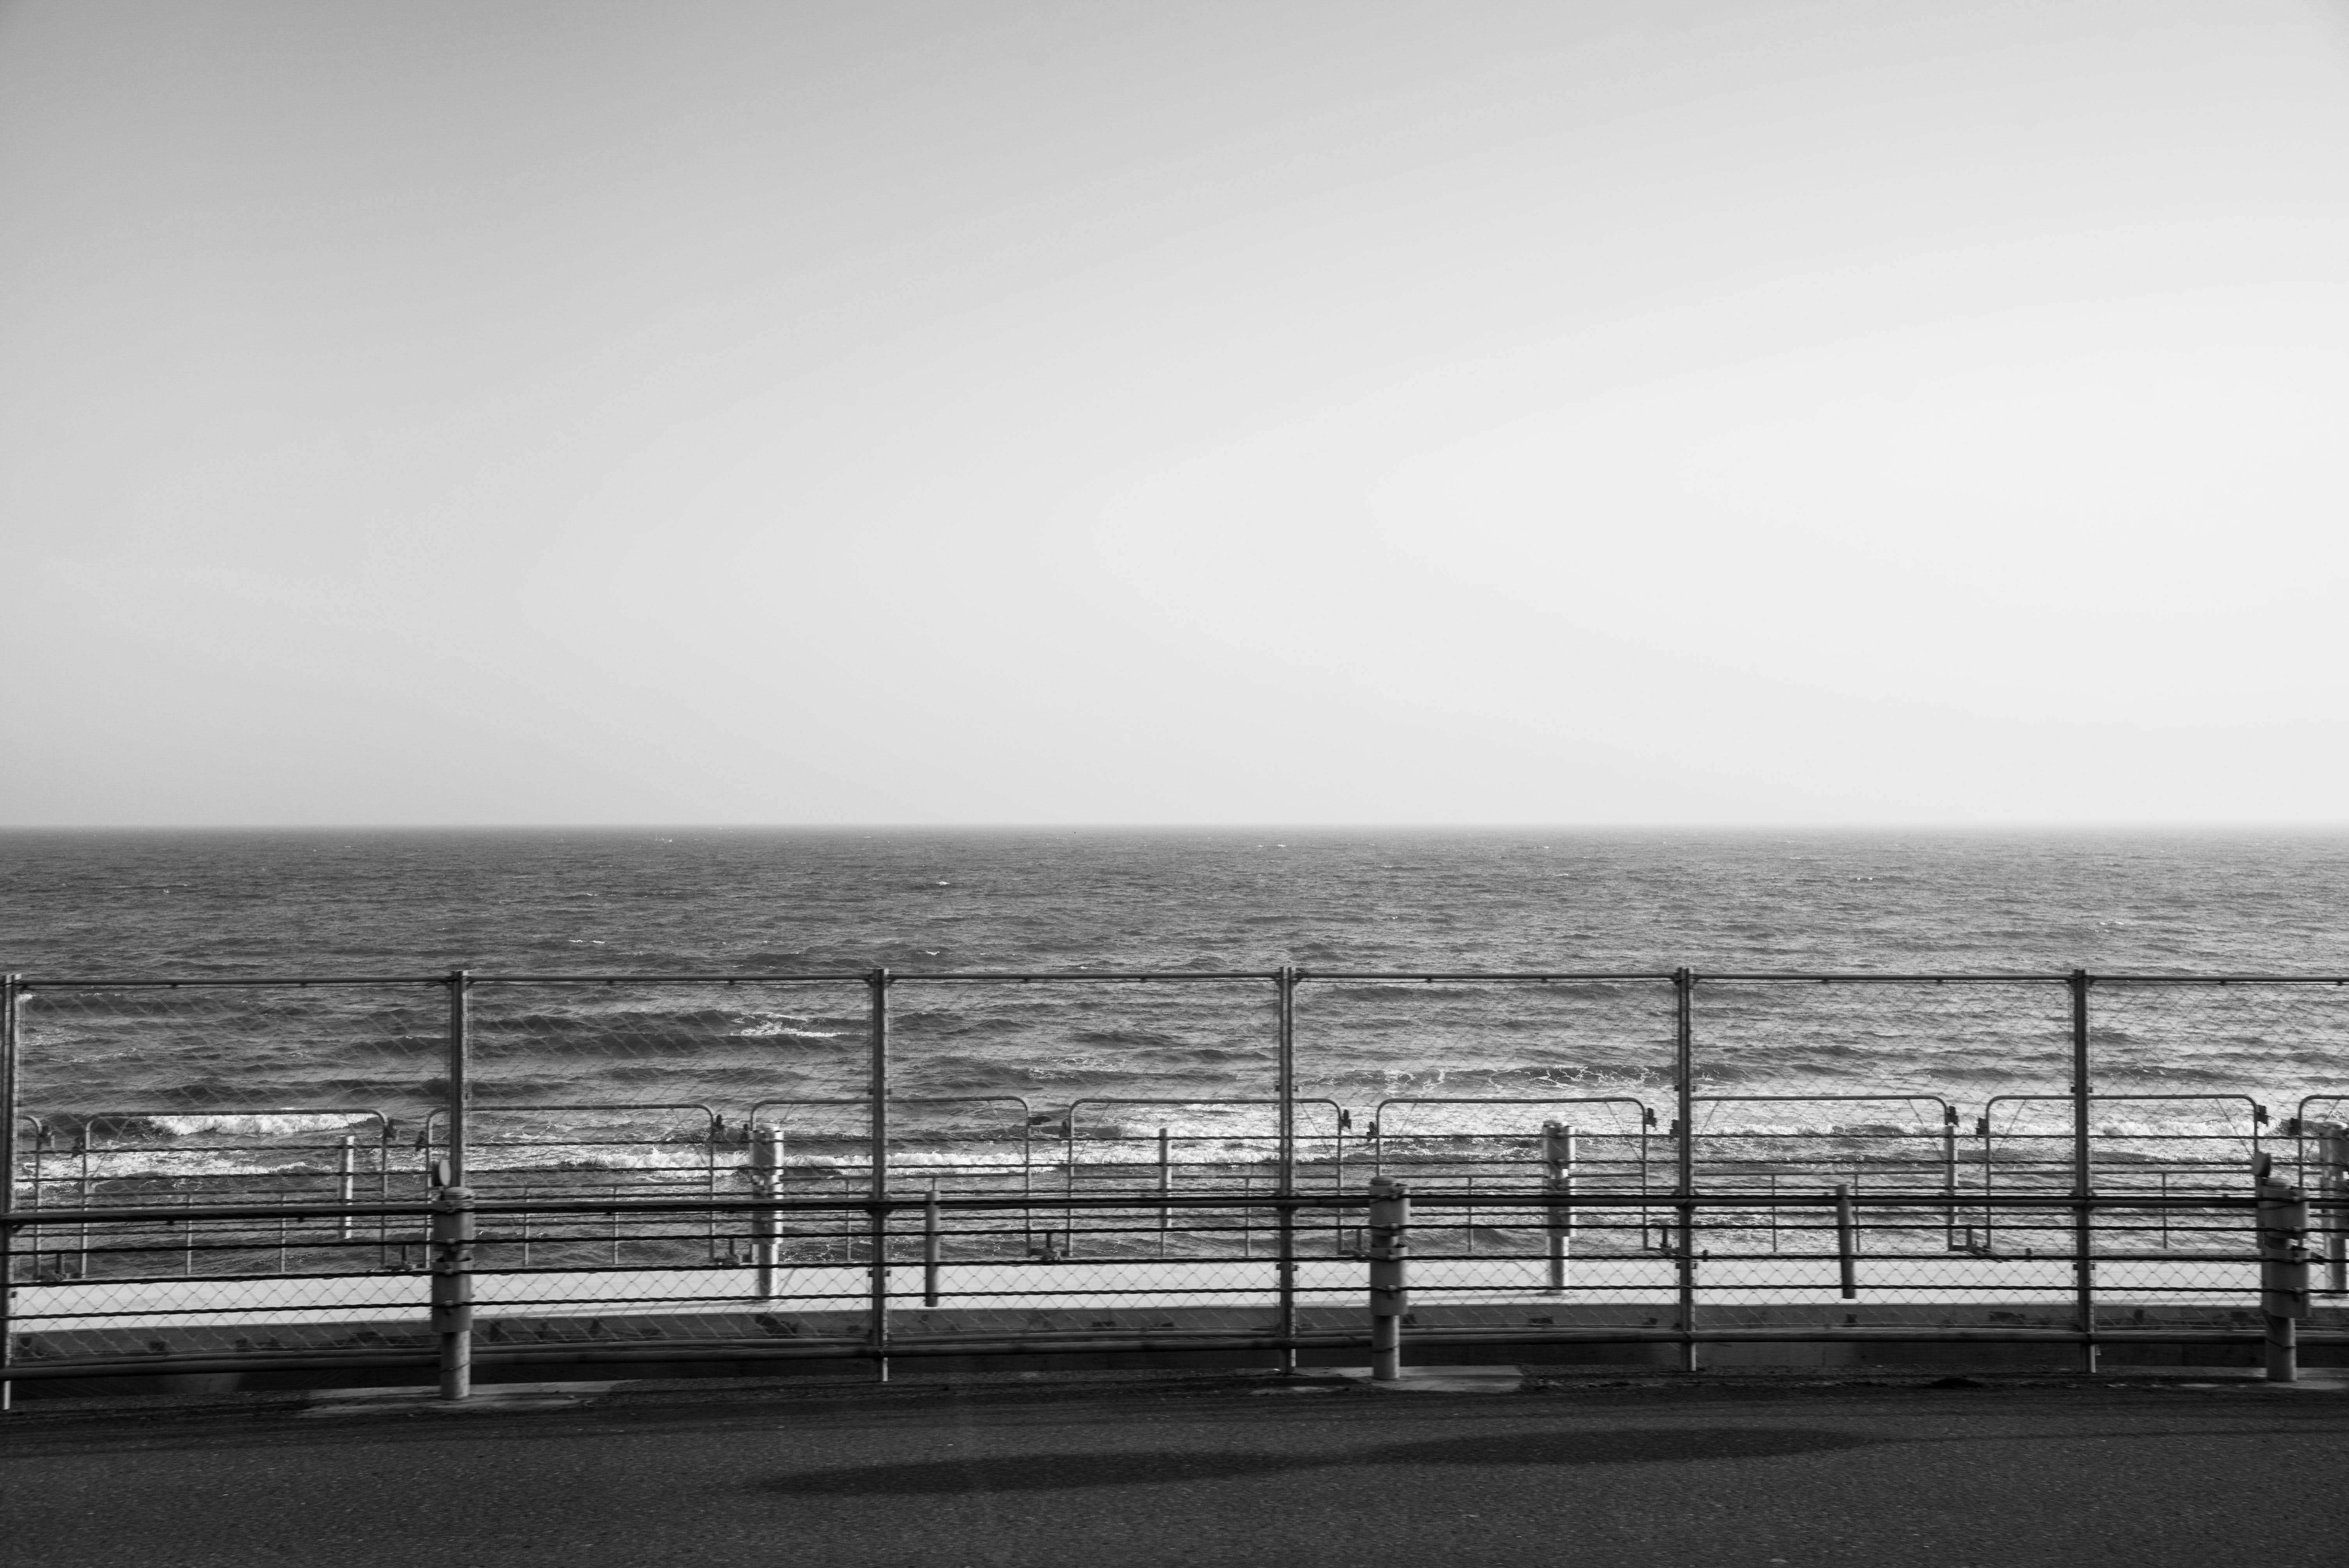 Grayscale Photography of Fence Beside Ocean